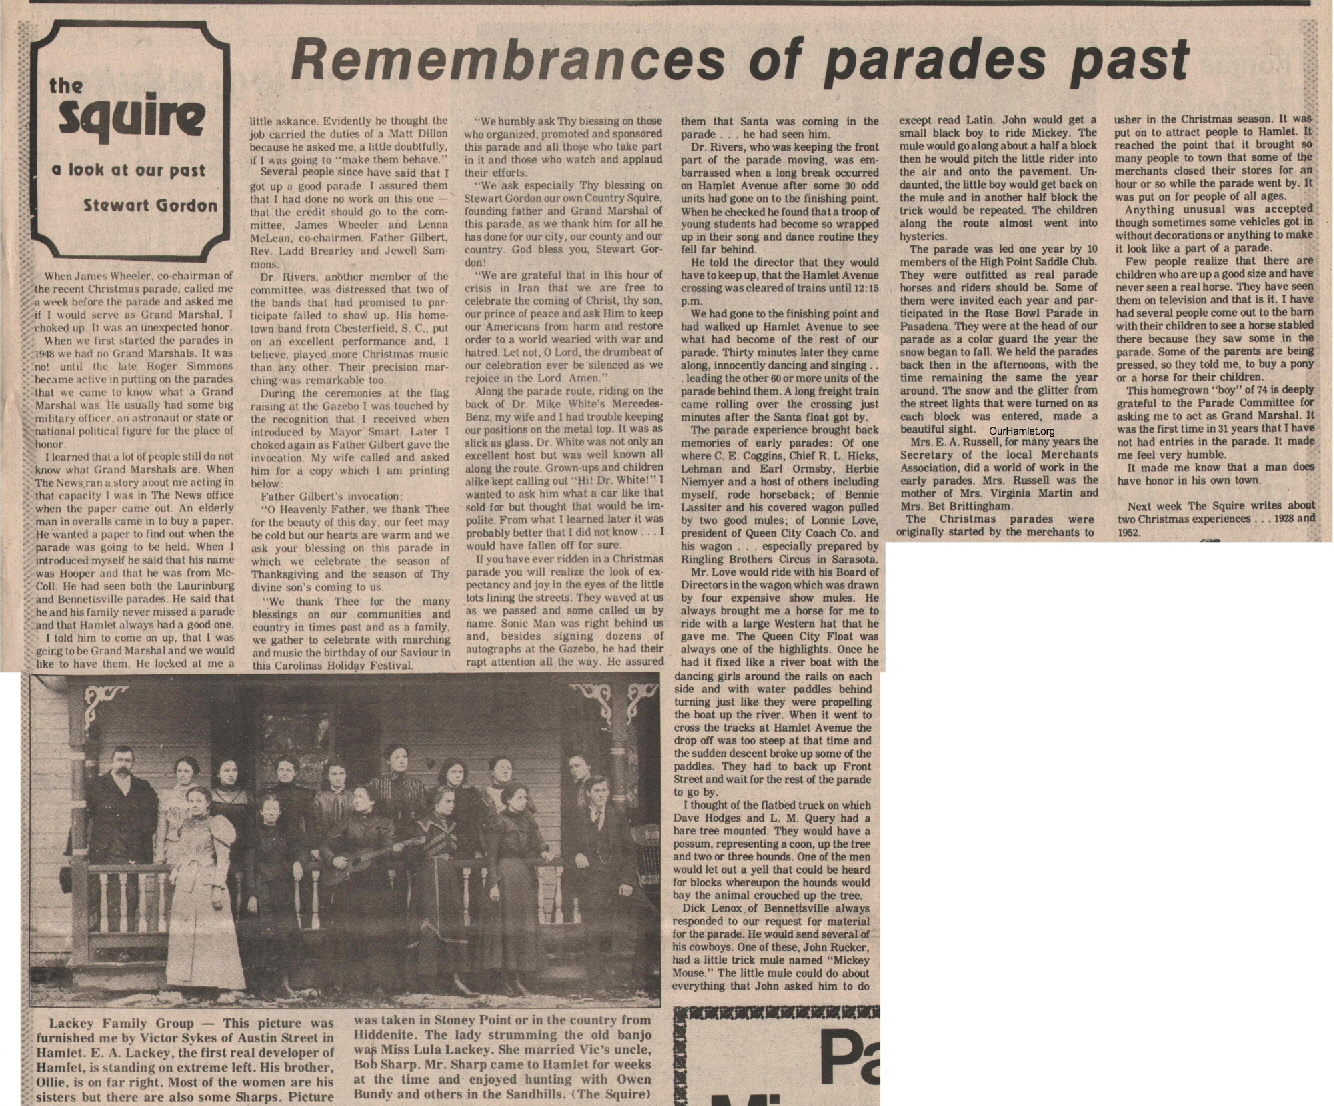 The Squire - Remembrances of parades past OH